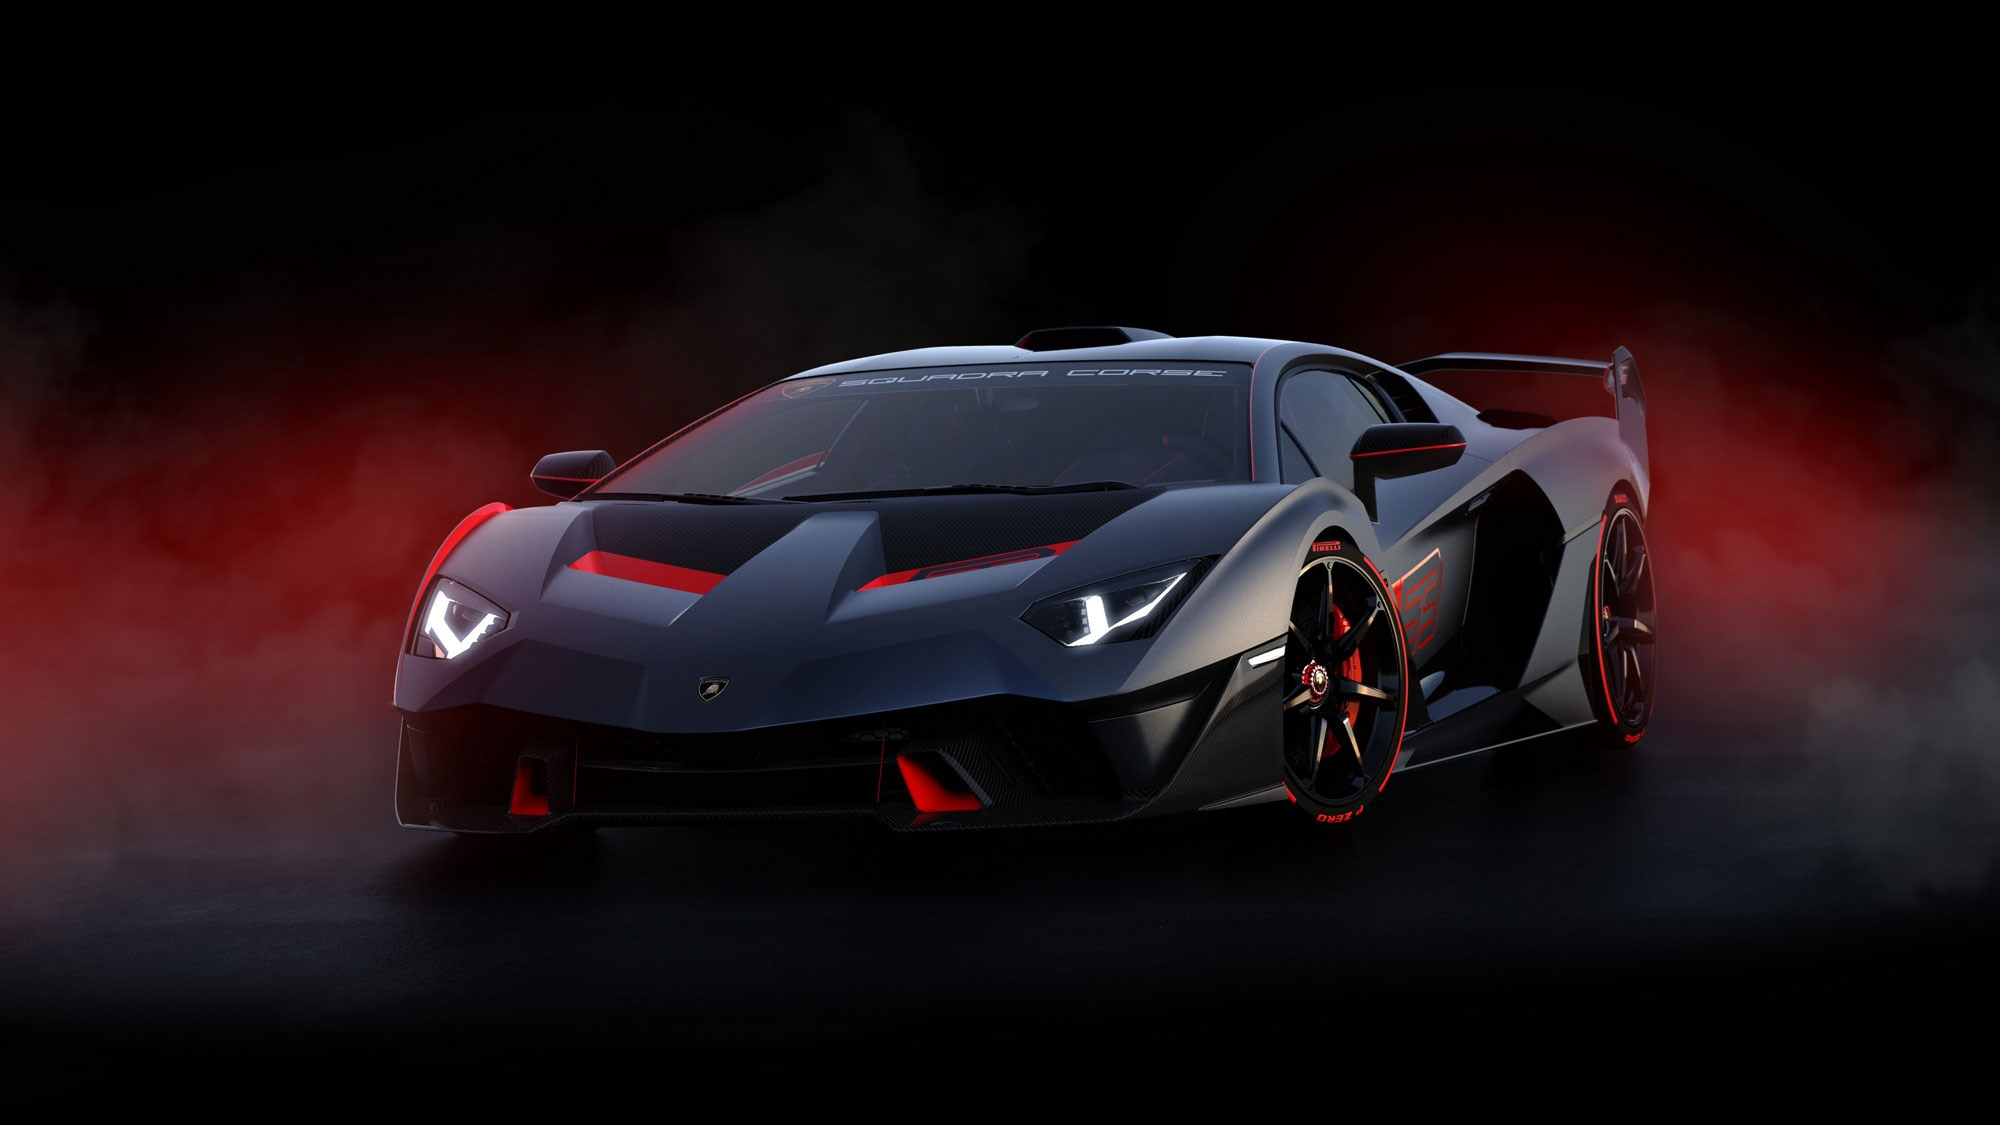 SC18: Meet Lamborghini's First Tailor-made Supercar